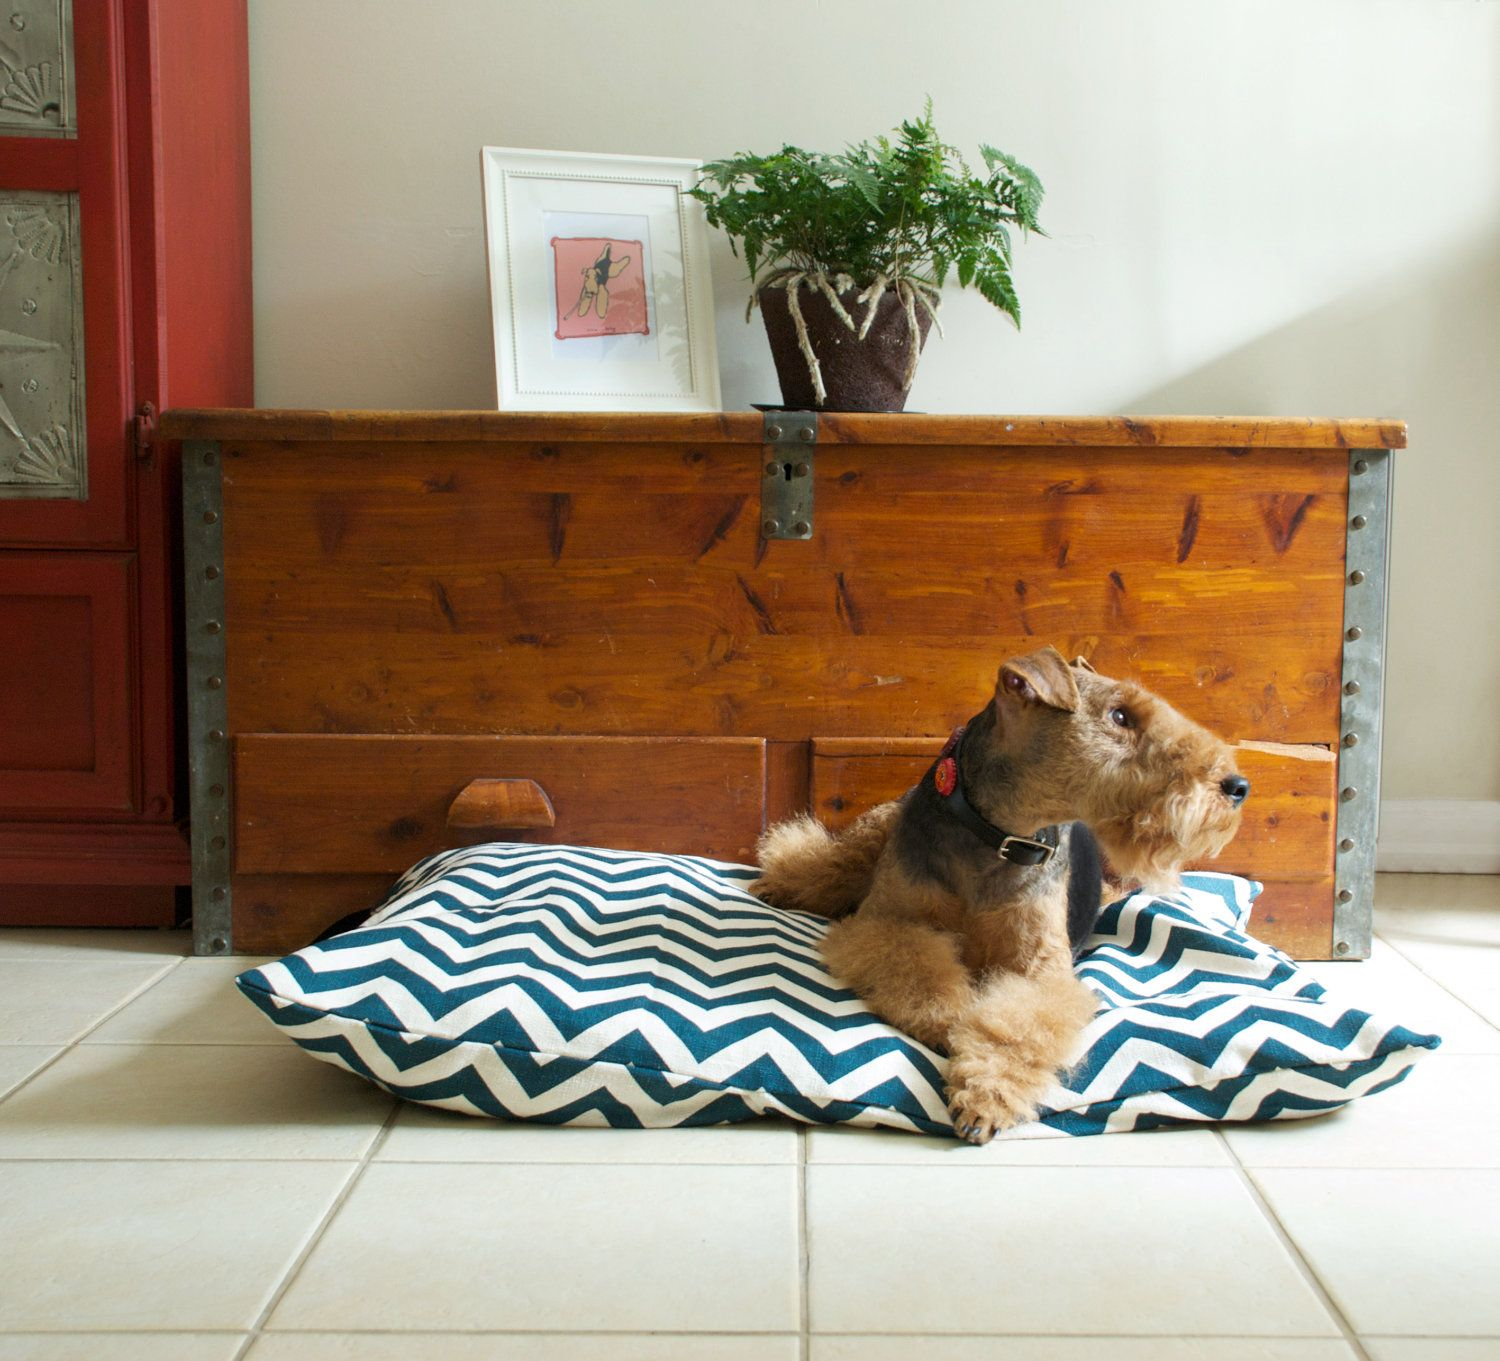 Dog Bed Chevron/Zig Zag Pet Duvet Cover. Just bought this